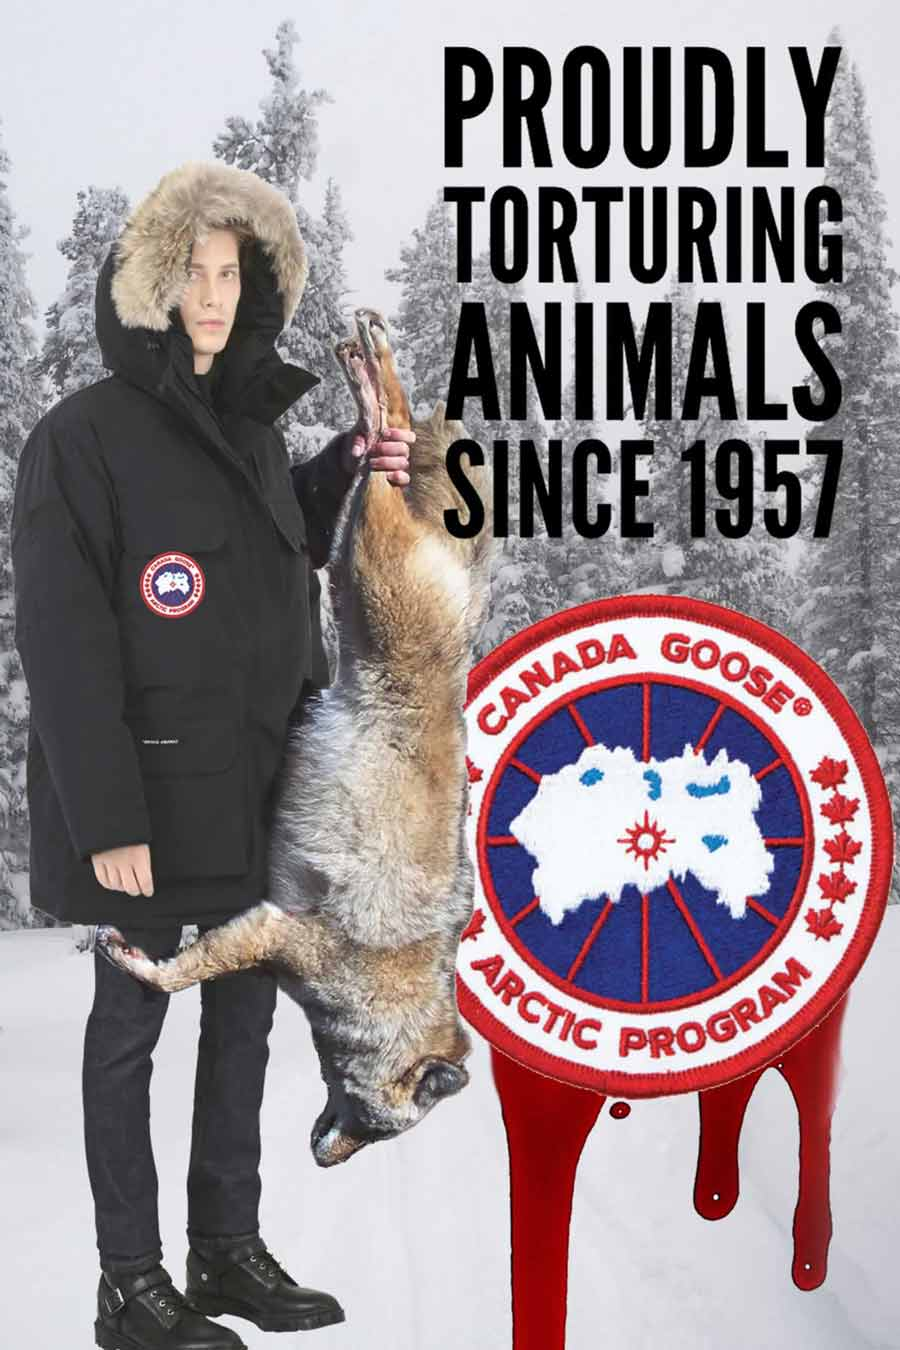 canada goose animal protection